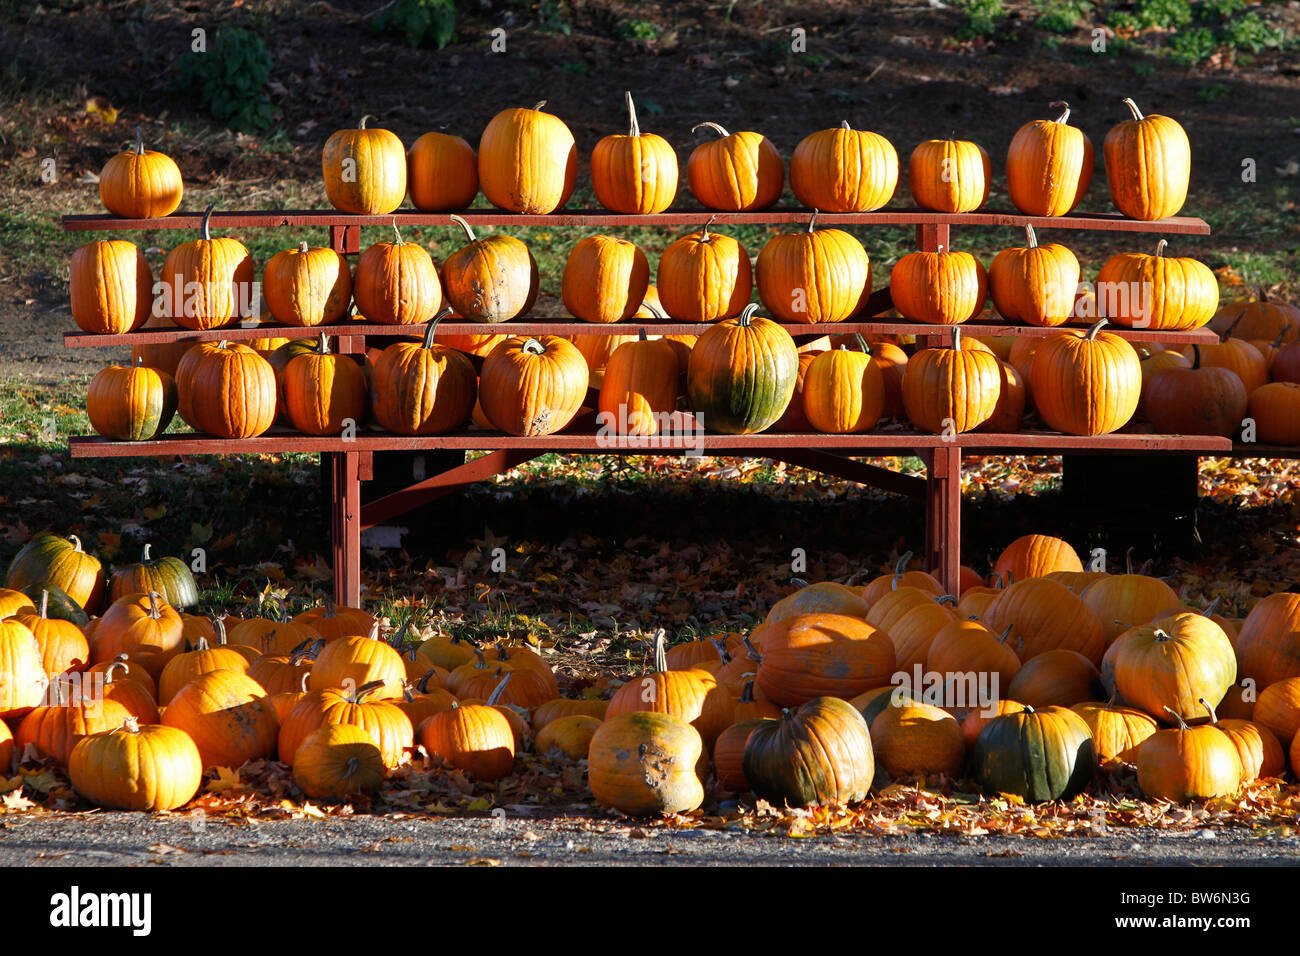 Farm stand pumpkins, The Berkshires, western Massachusetts - Stock Image